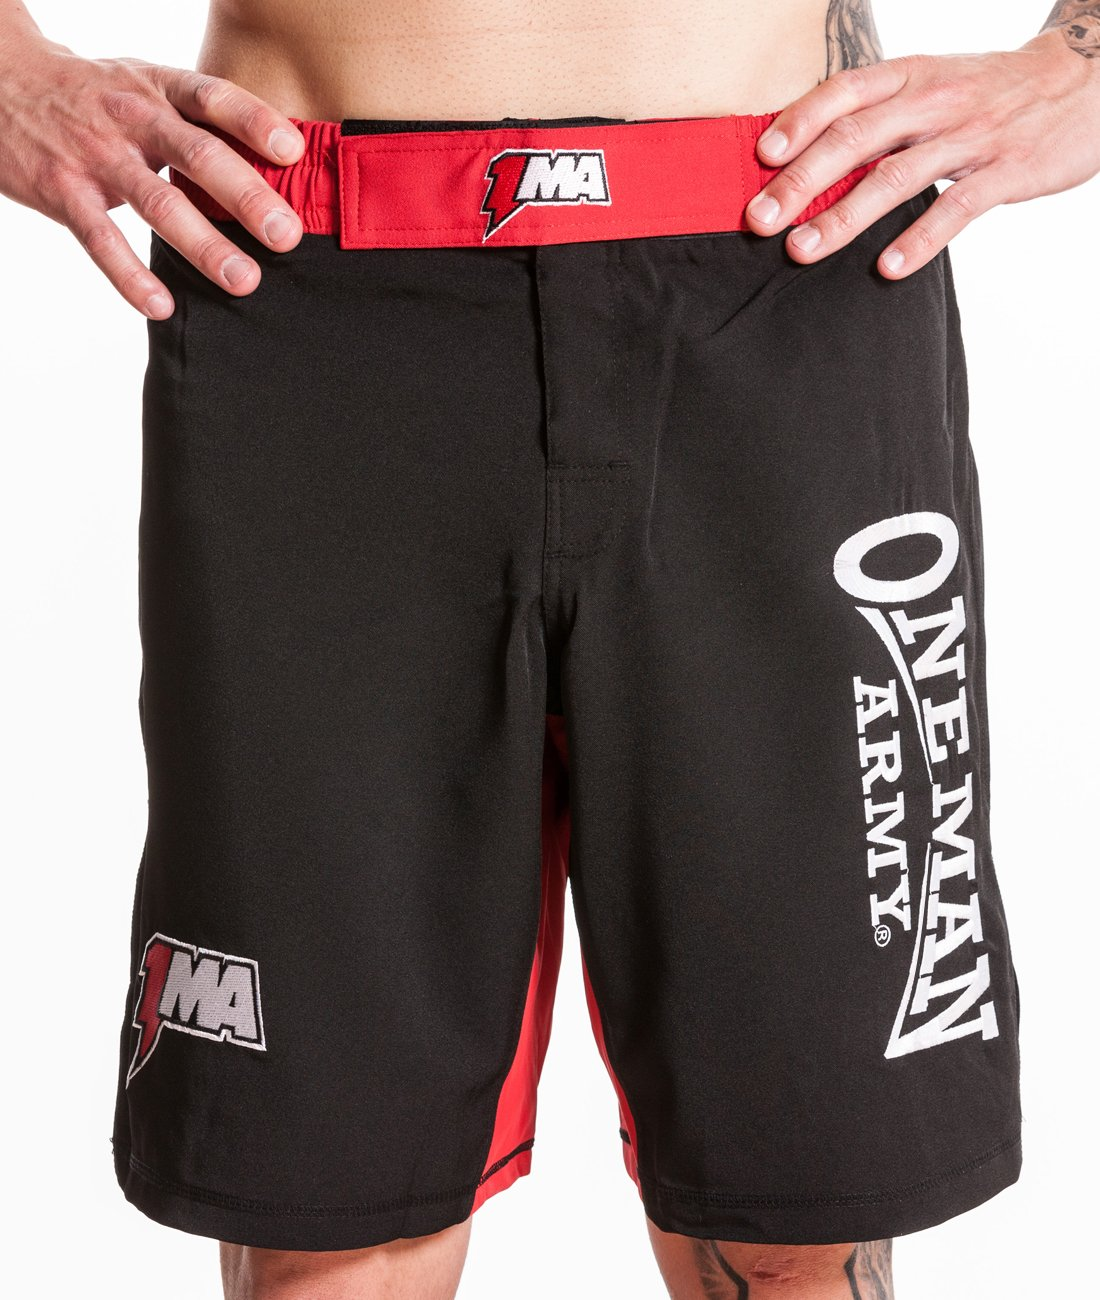 ONE MAN ARMY Fightshorts / Short / Trainingshose kurz / Pants / Fitness / Bodybuilding / MMA / Kampfsport / Casual / Fightshorts